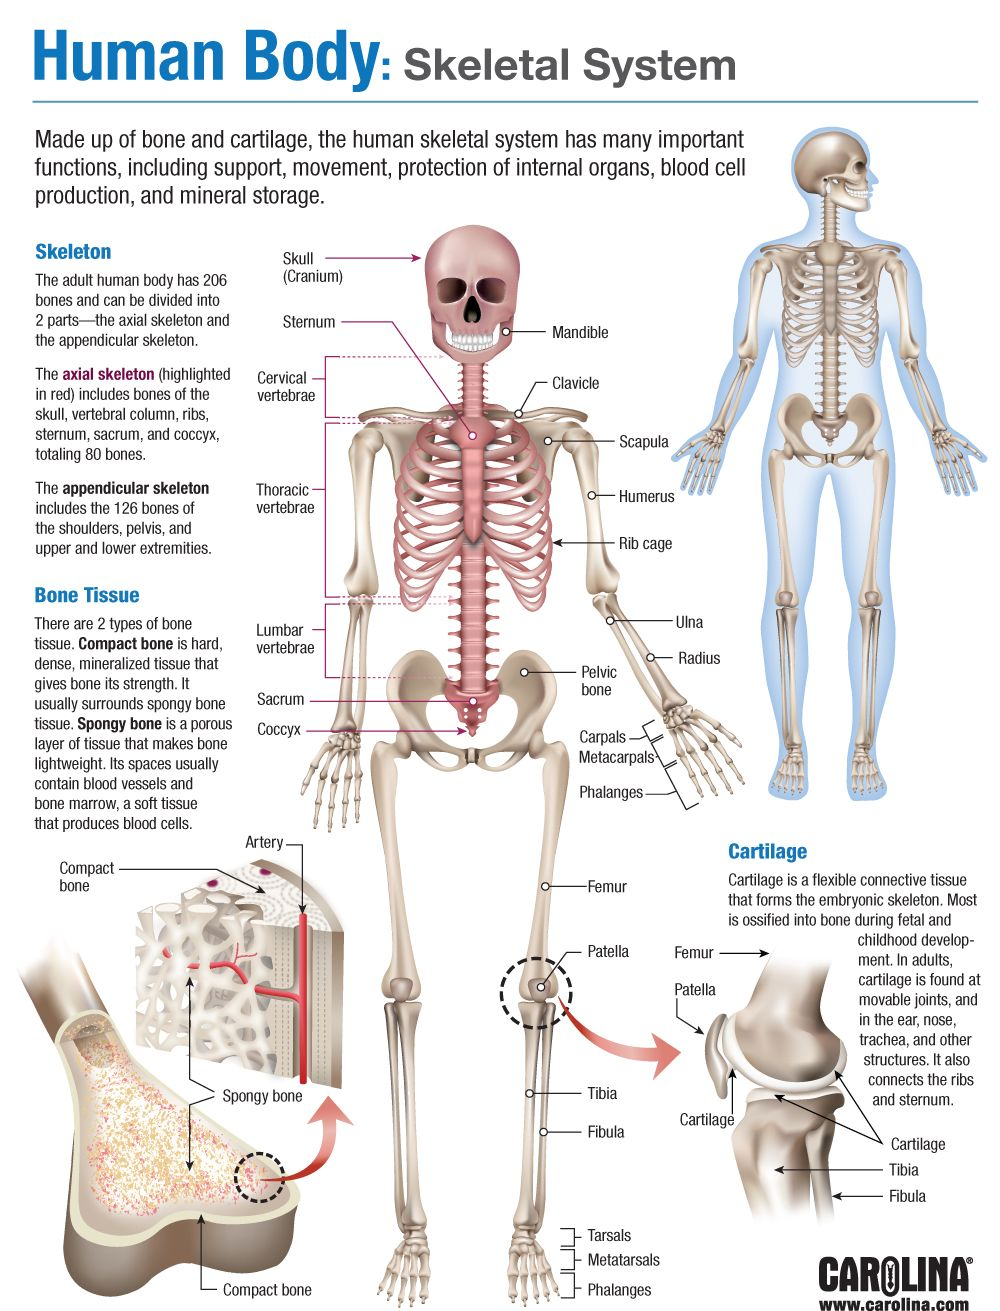 Human Body: Skeletal System | Carolina com